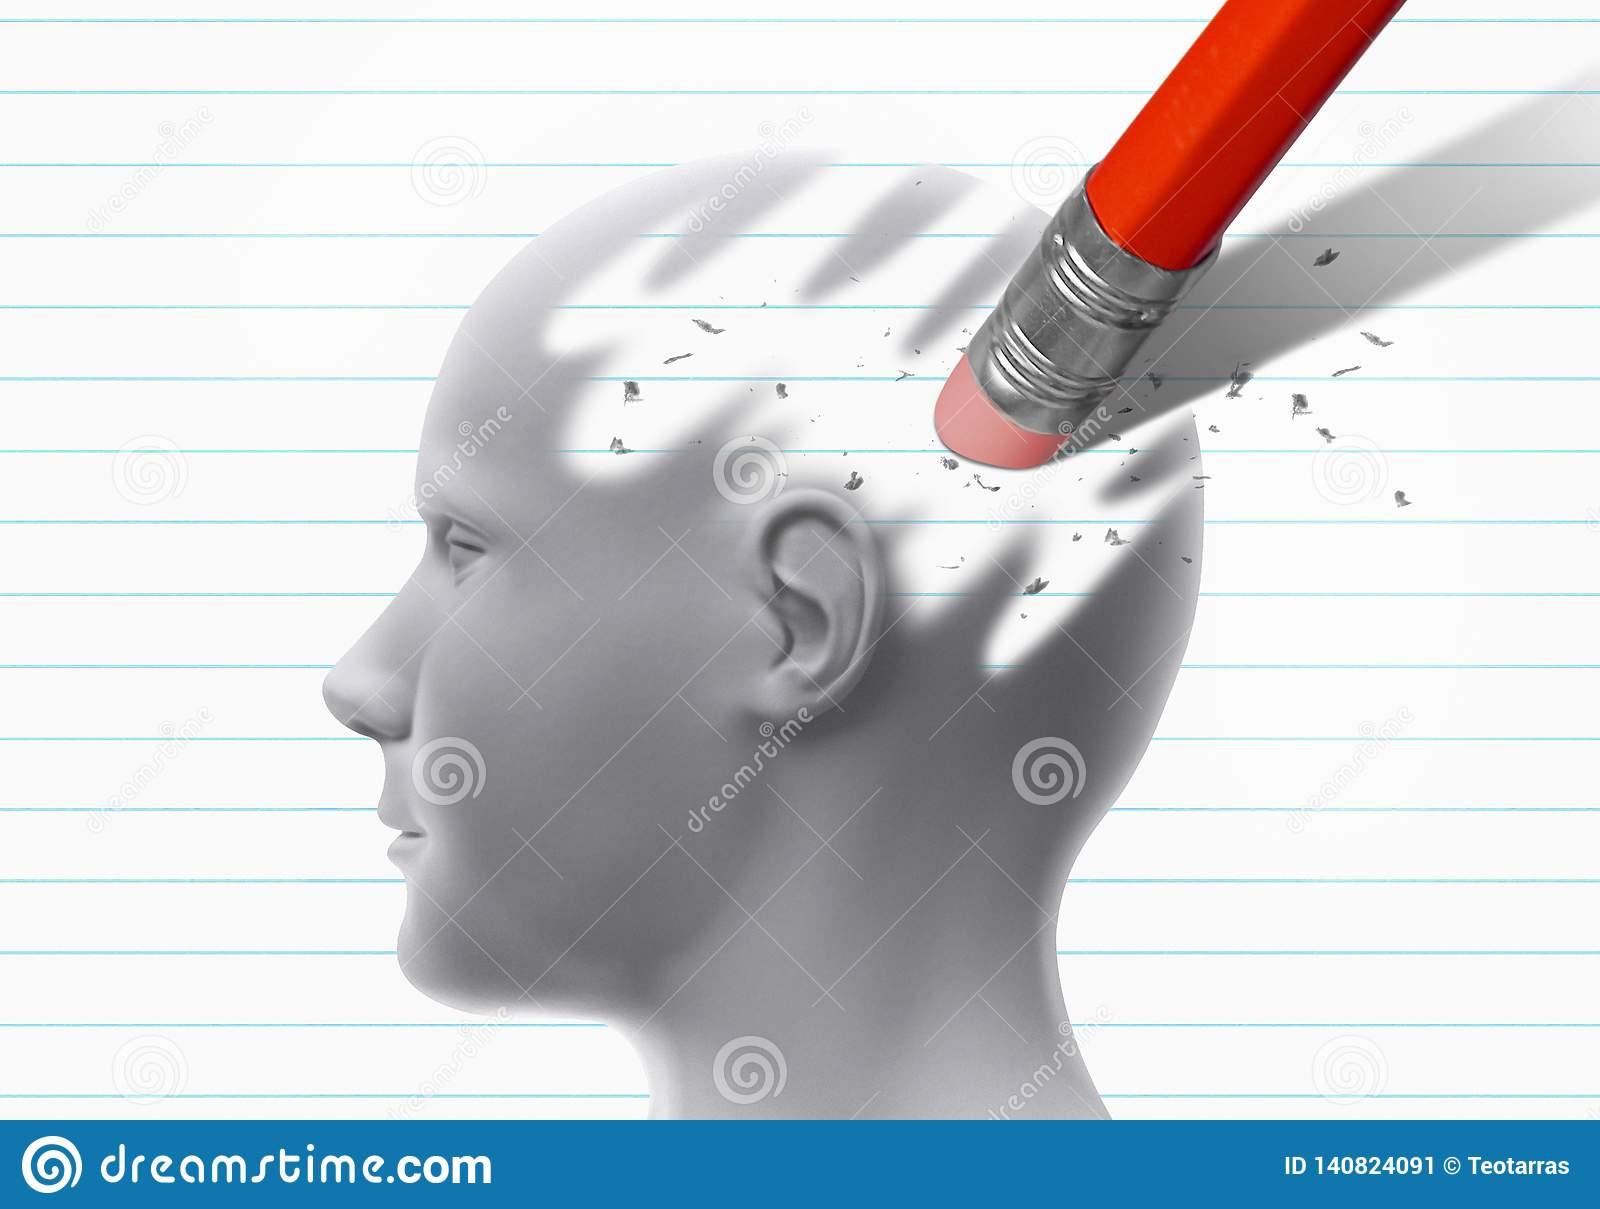 Brain erased by pencil eraser